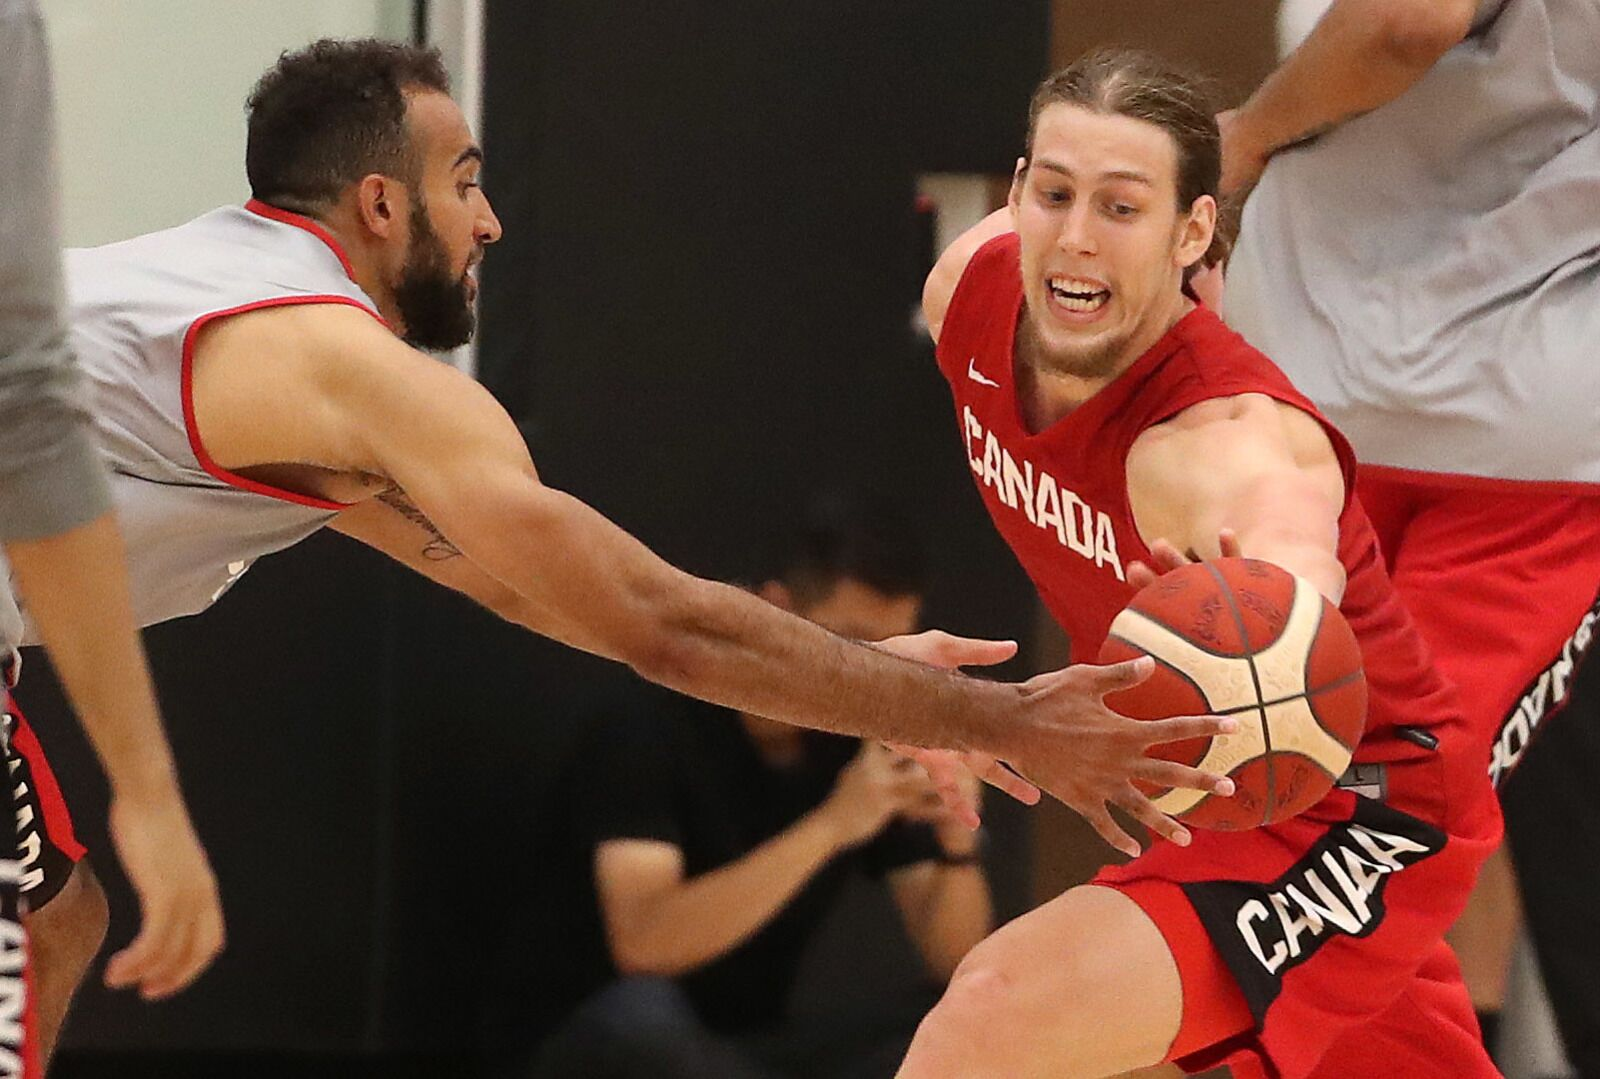 Miami Heat Hot Topics: Olynyk out for Canada, Justise shot sustainable?